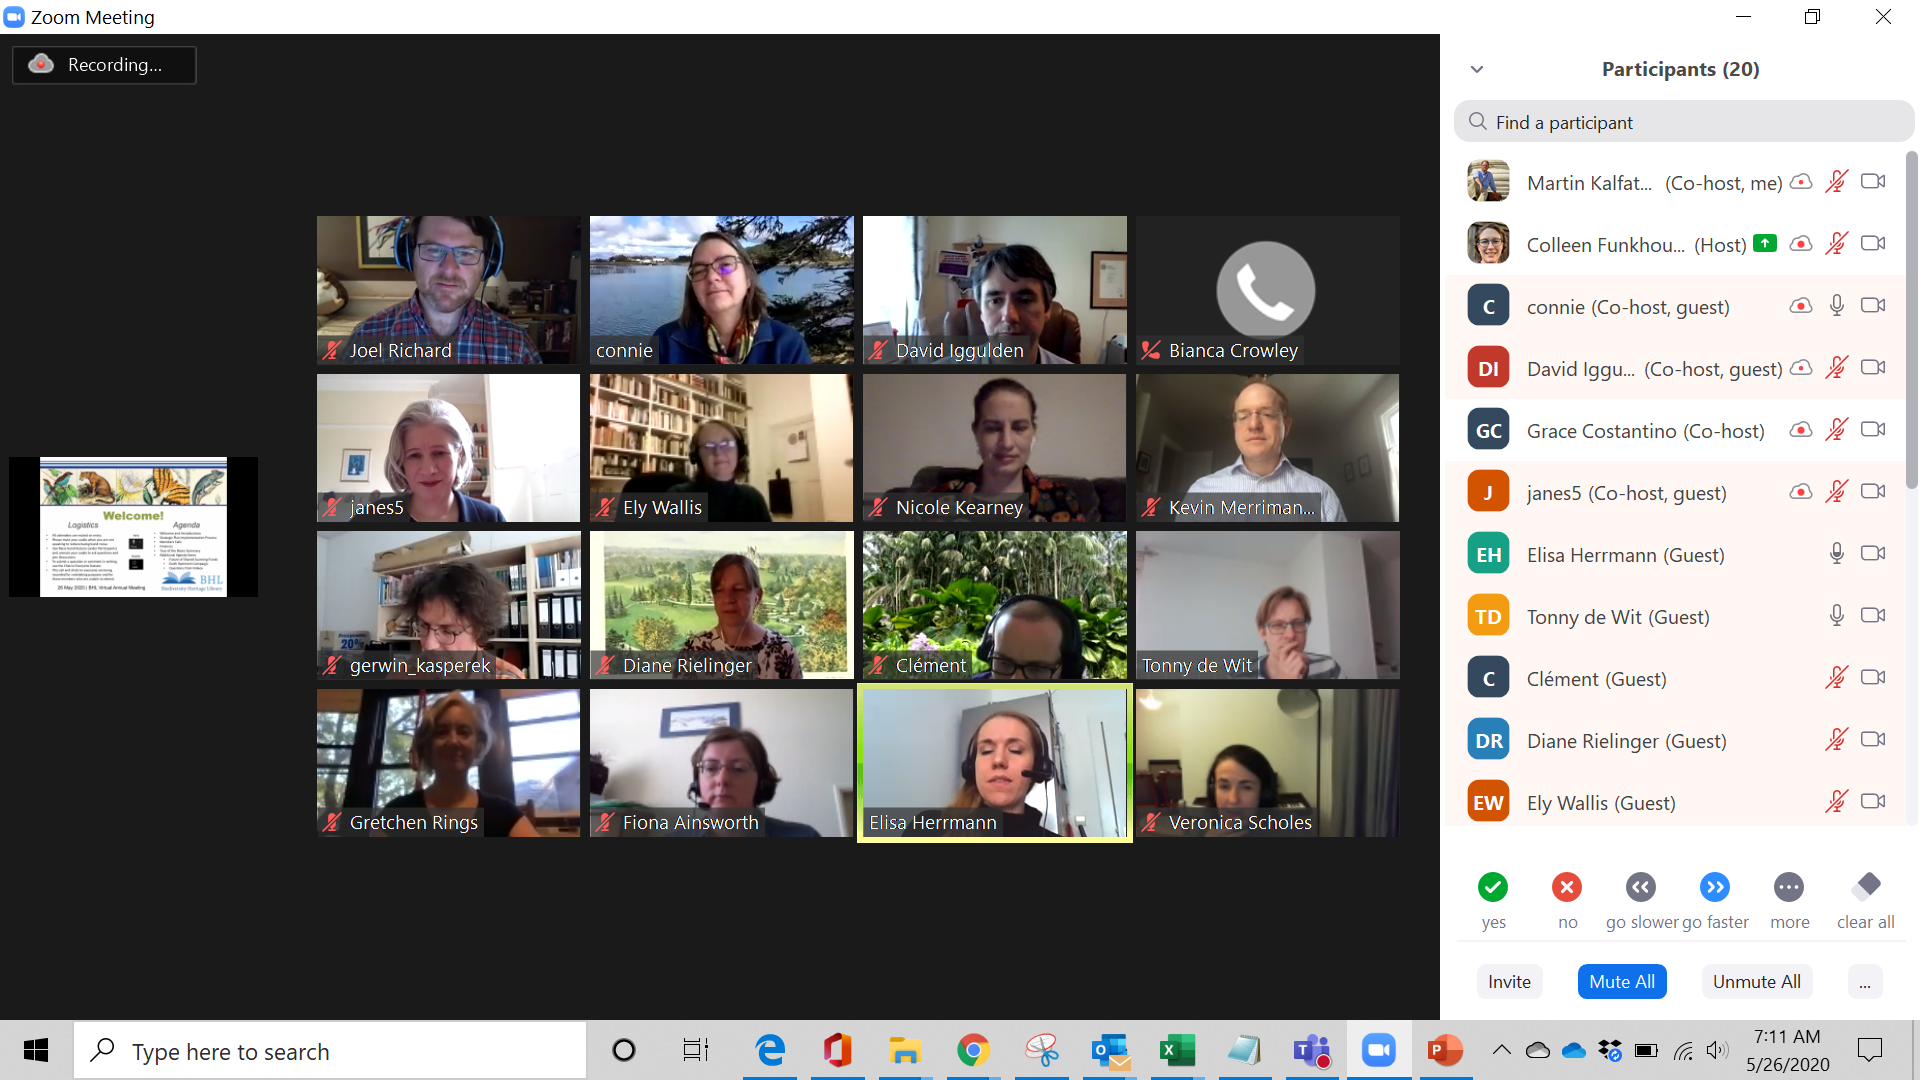 Video conferencing screen showing a grid of people's faces in video screens and a welcome slide